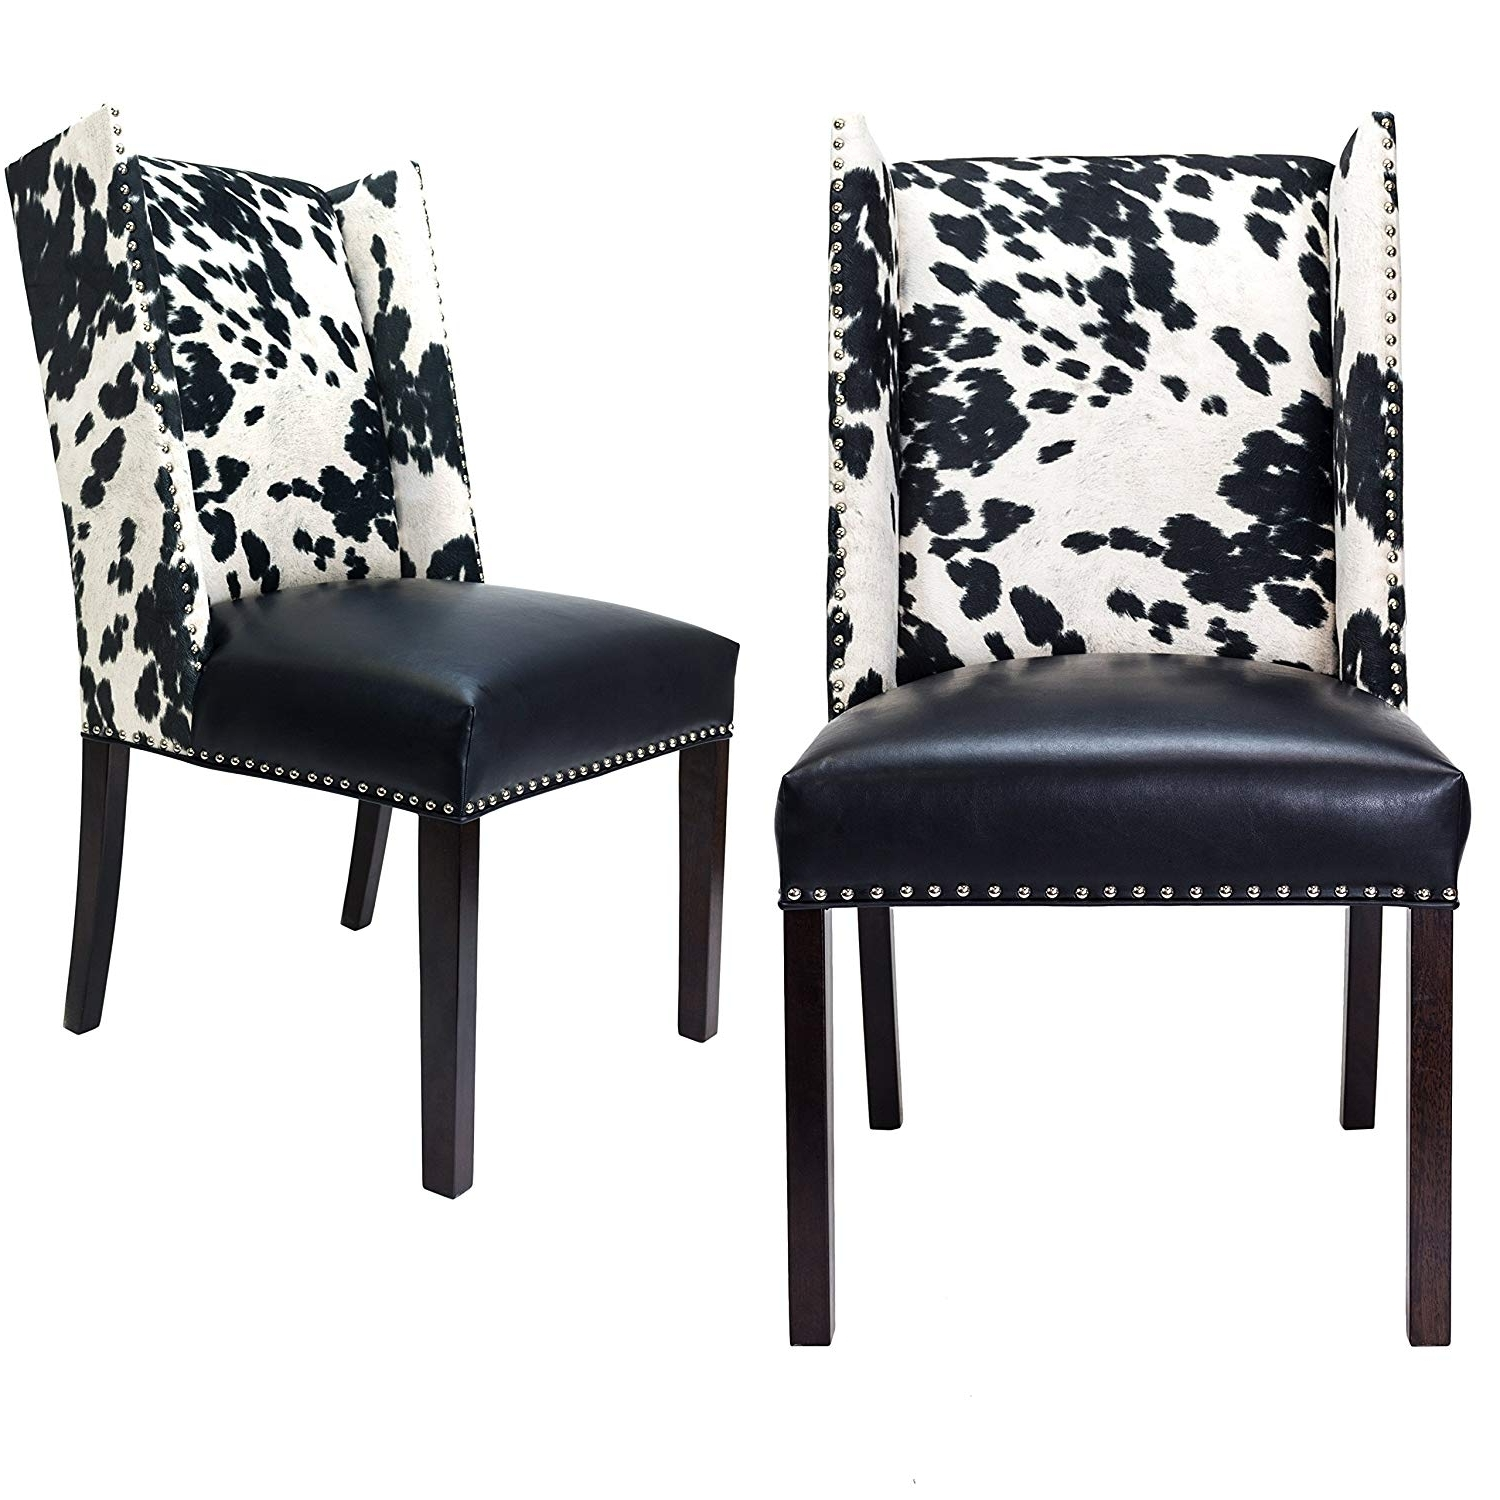 Widely Used Jaxon Wood Side Chairs For Amazon: Sole Designs Rexford Faux Cowhide Leather And Fabric (View 20 of 20)